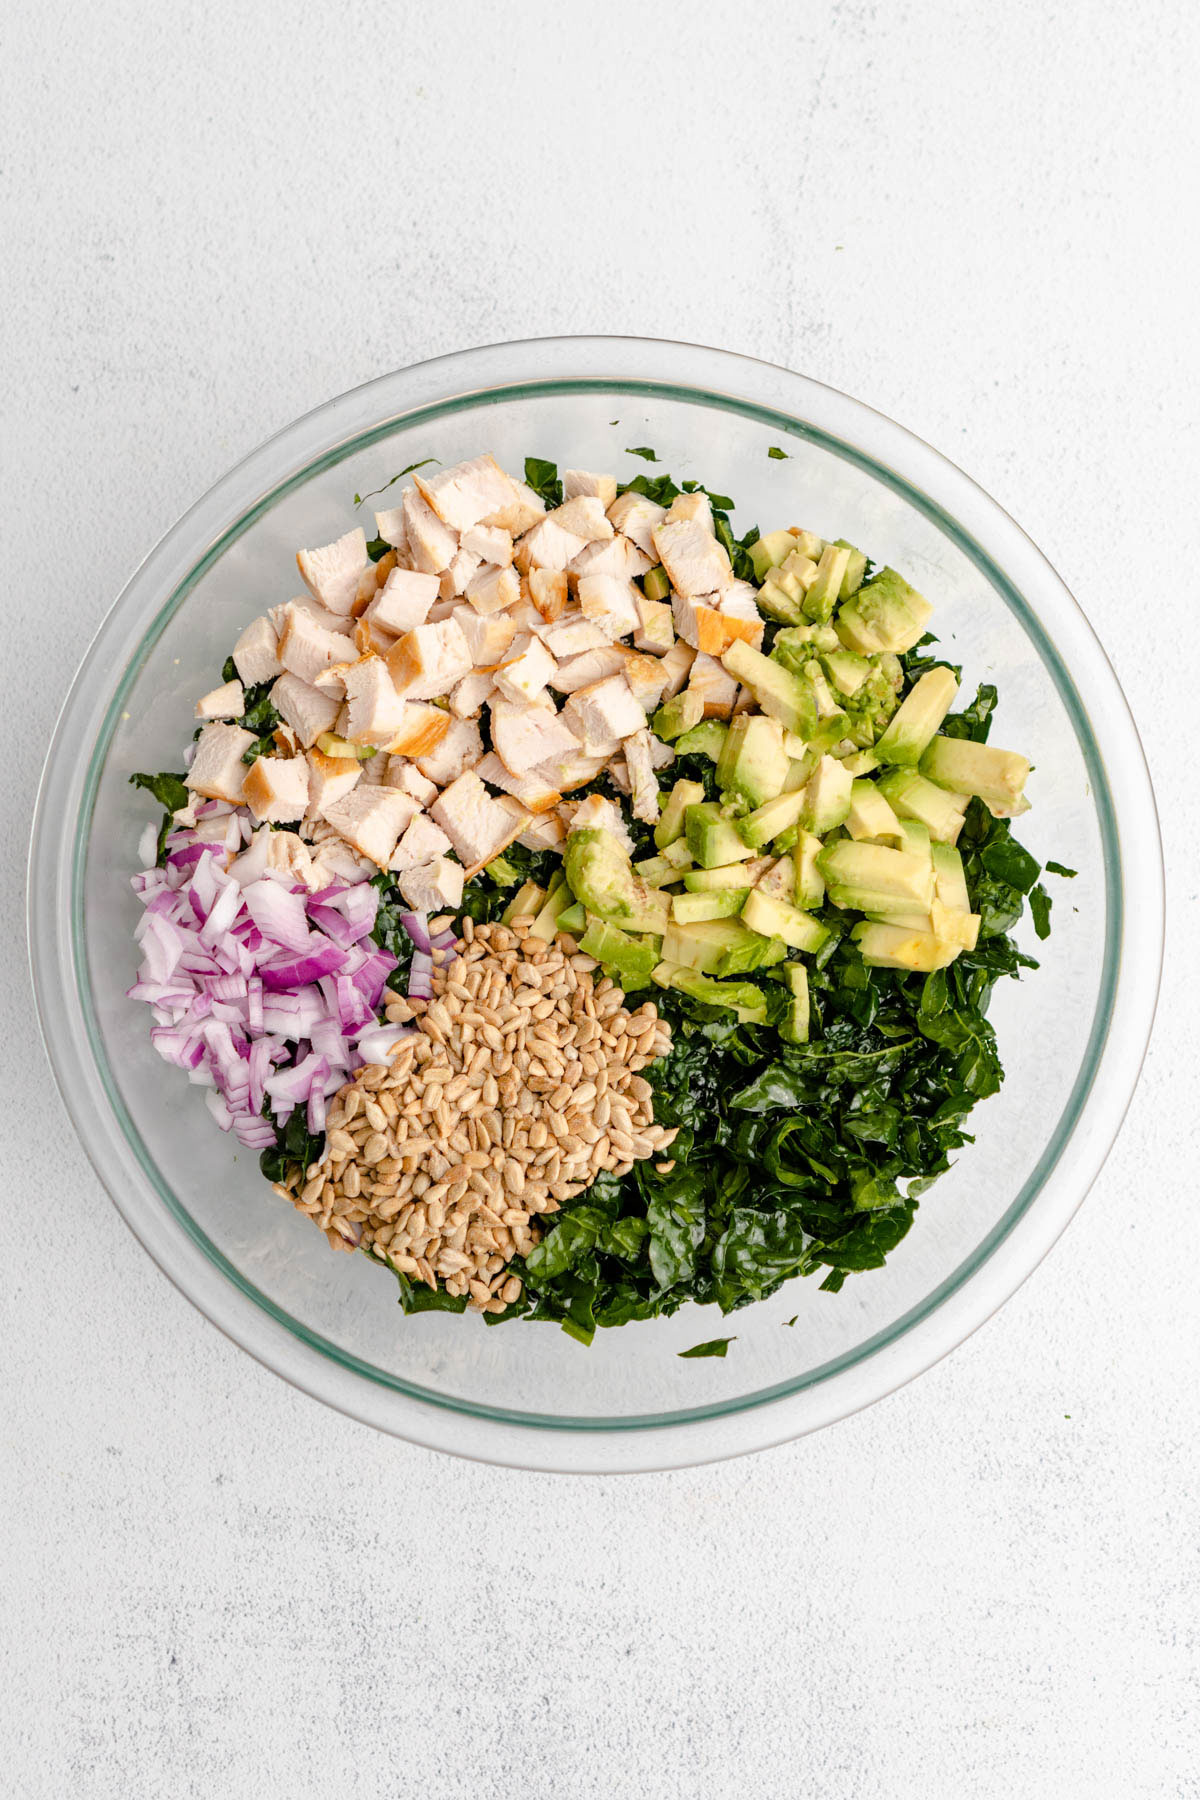 Chopped ingredients on top of massaged kale leaves before tossing salad together.